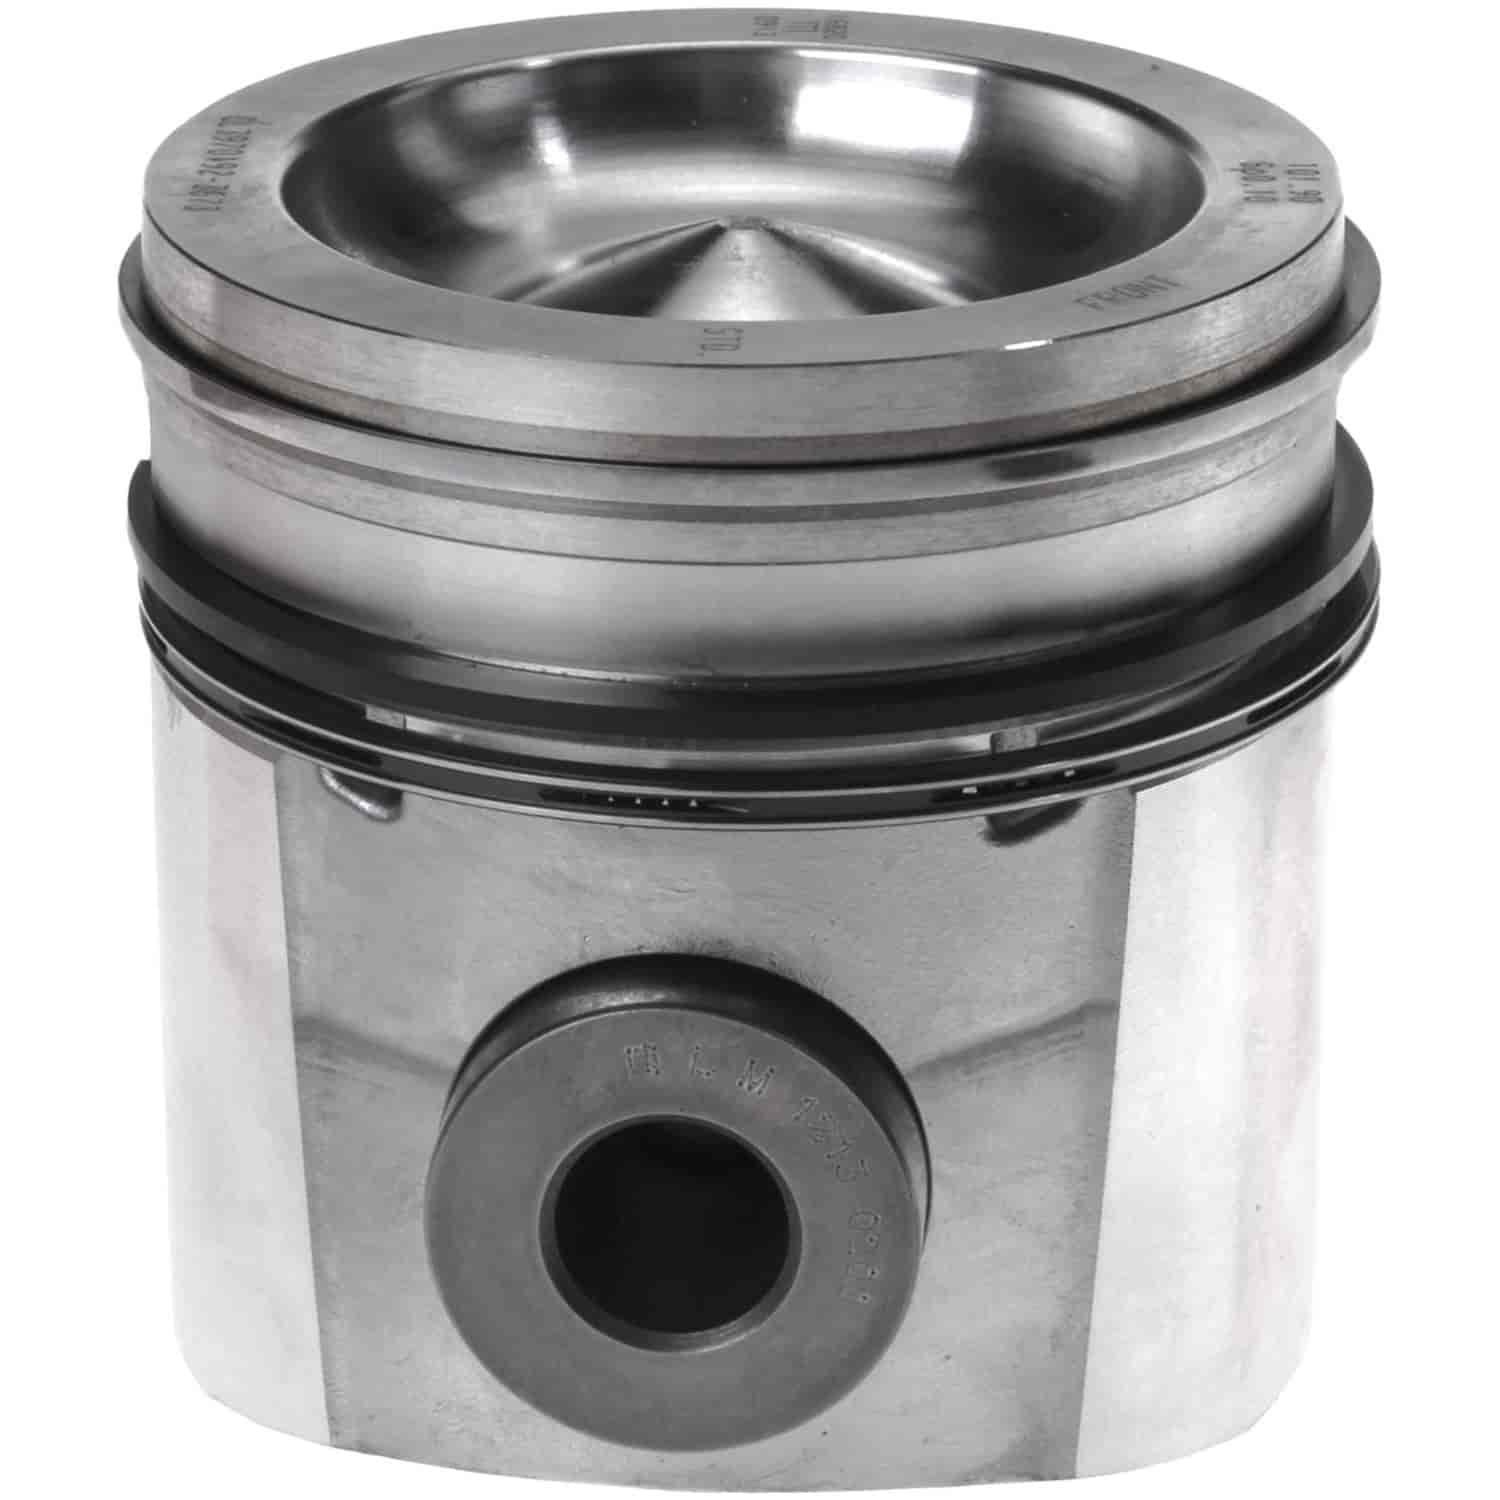 Clevite Piston Rings For Bore